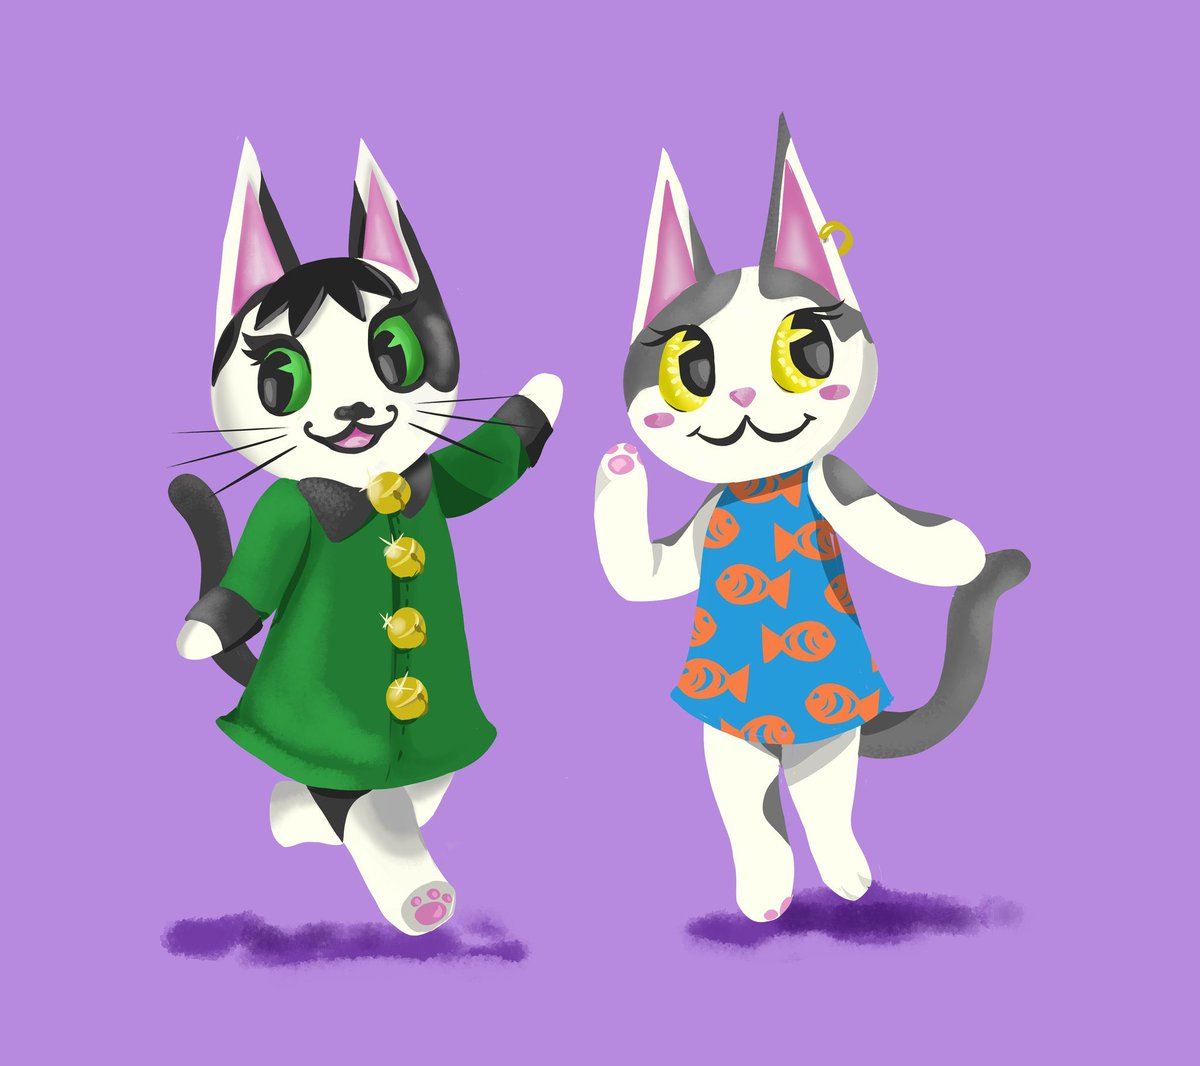 Replying to @julienforts: Leah drew Misty and Cora as #AnimalCrossing villagers!